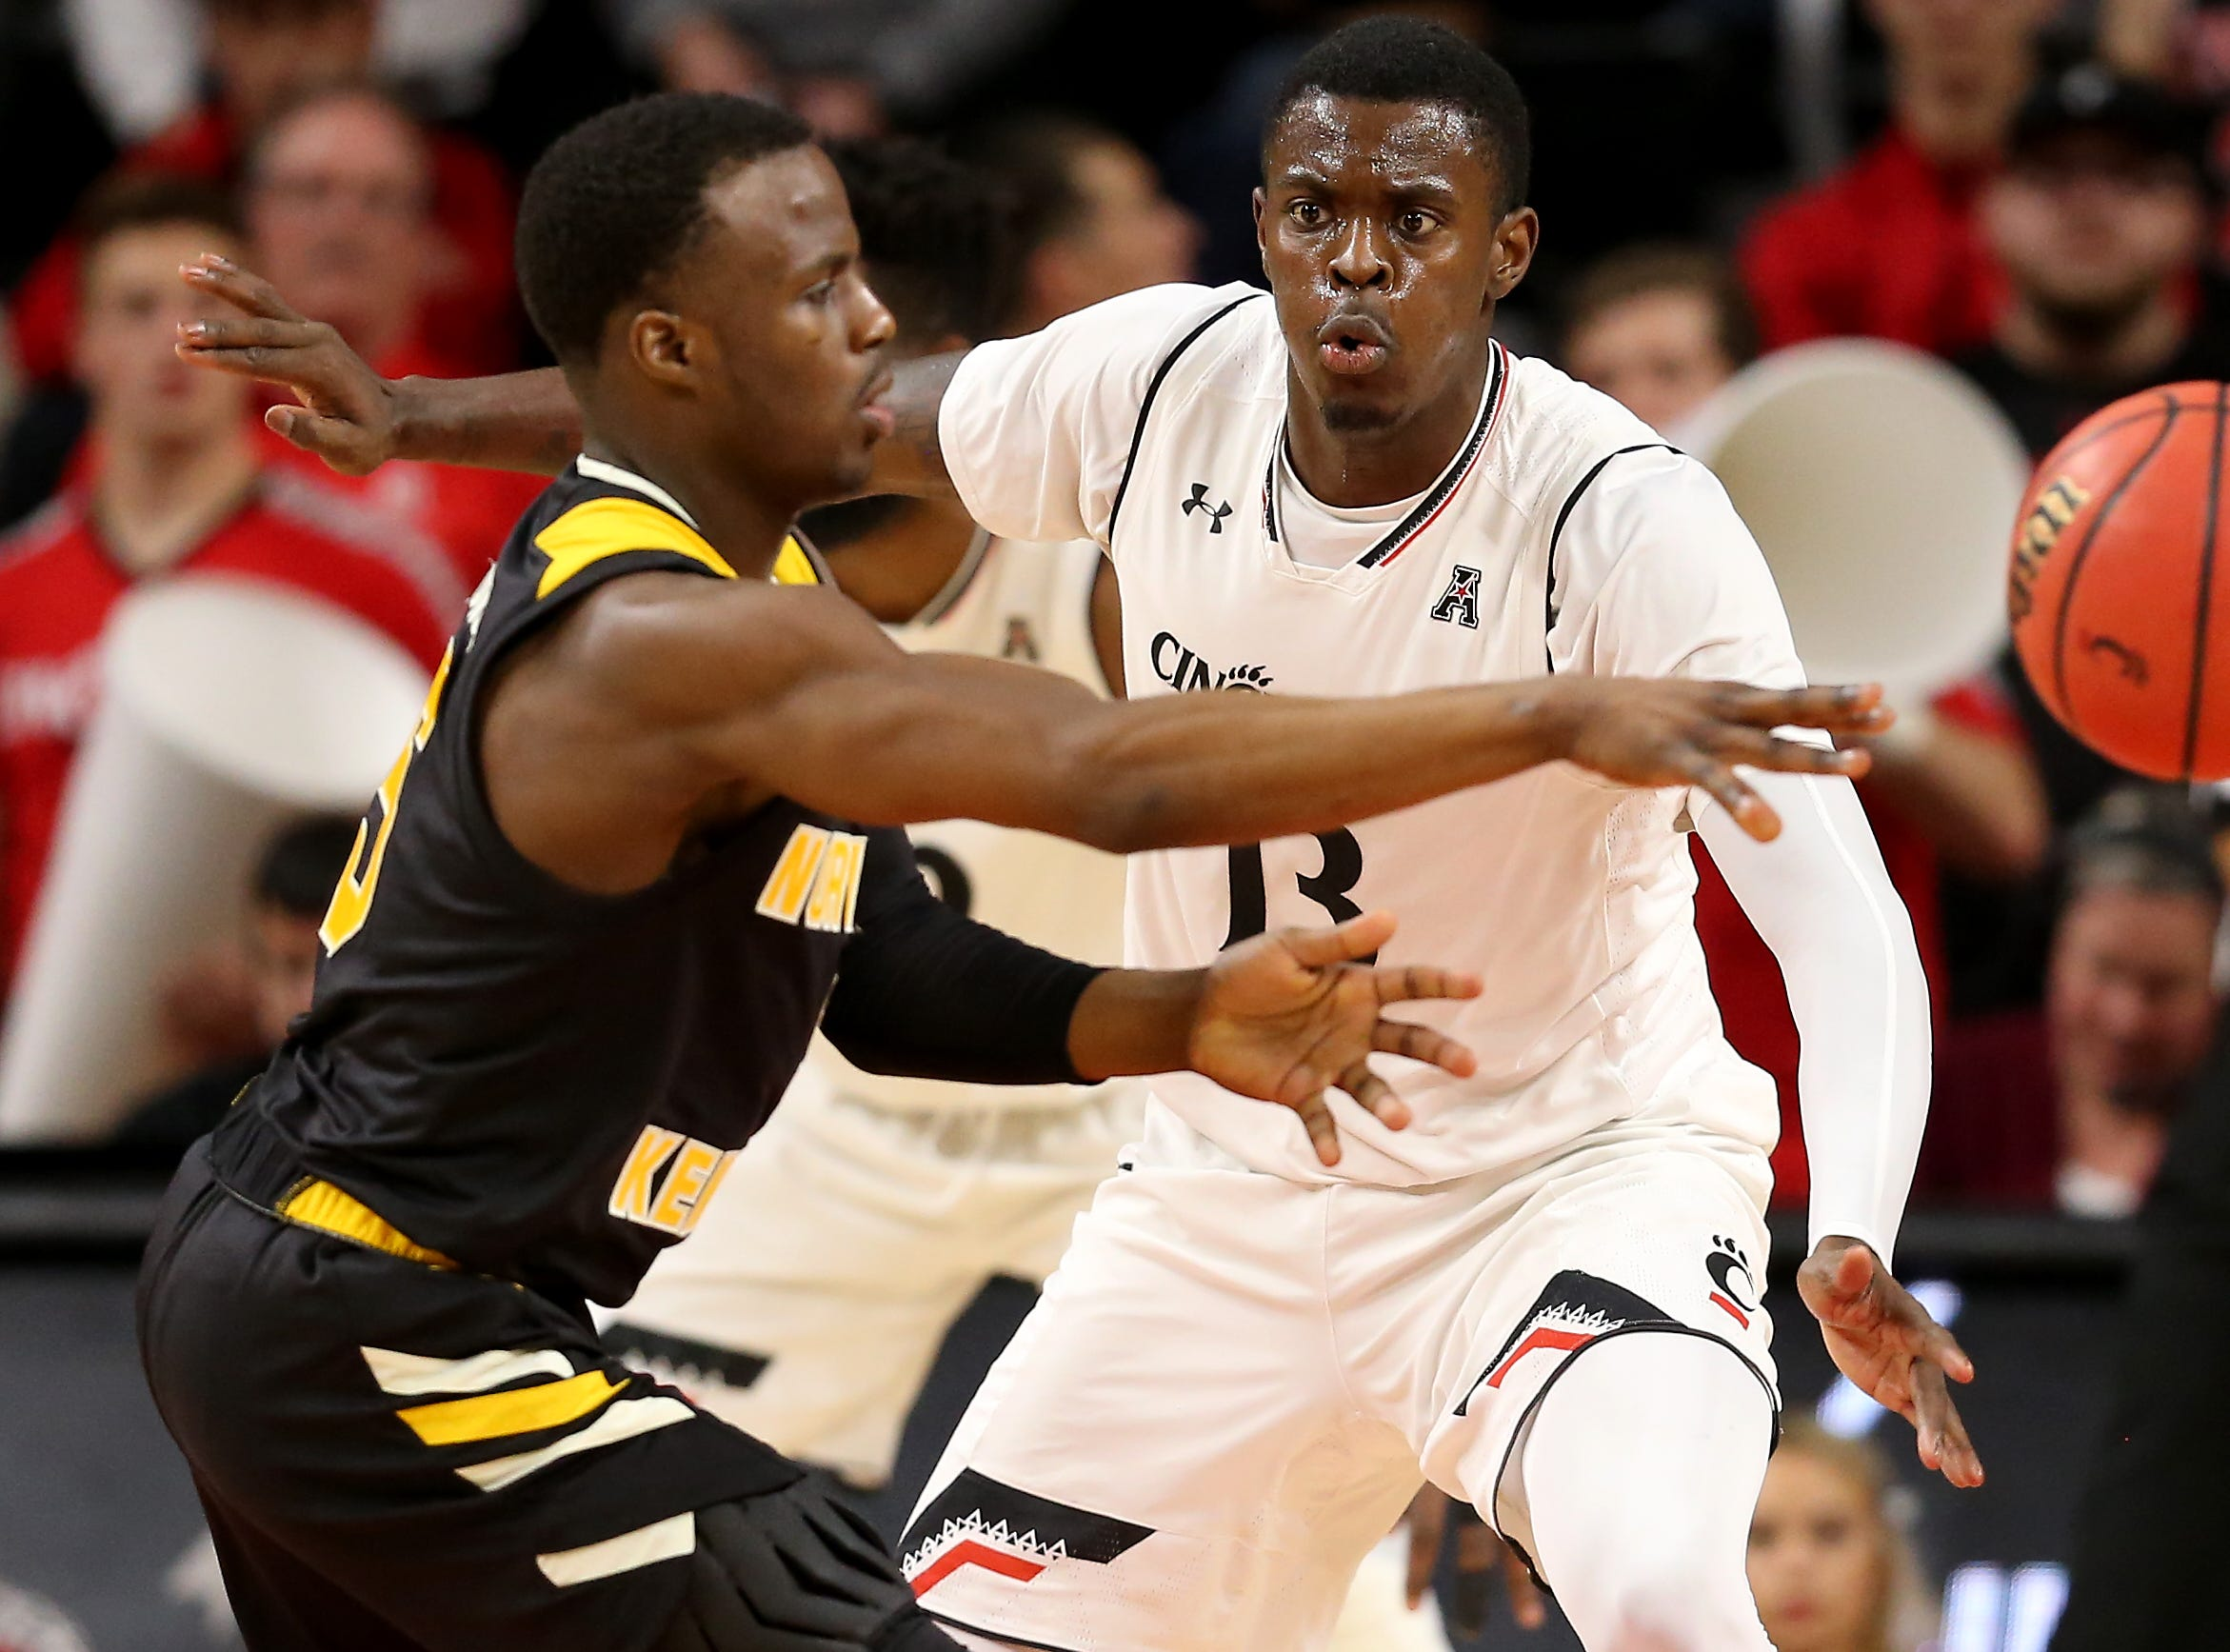 Cincinnati Bearcats forward Tre Scott (13) defends on Northern Kentucky Norse guard Zaynah Robinson (5) in the second half of an NCAA college basketball game, Tuesday, Dec. 4, 2018, at Fifth Third Arena in Cincinnati.